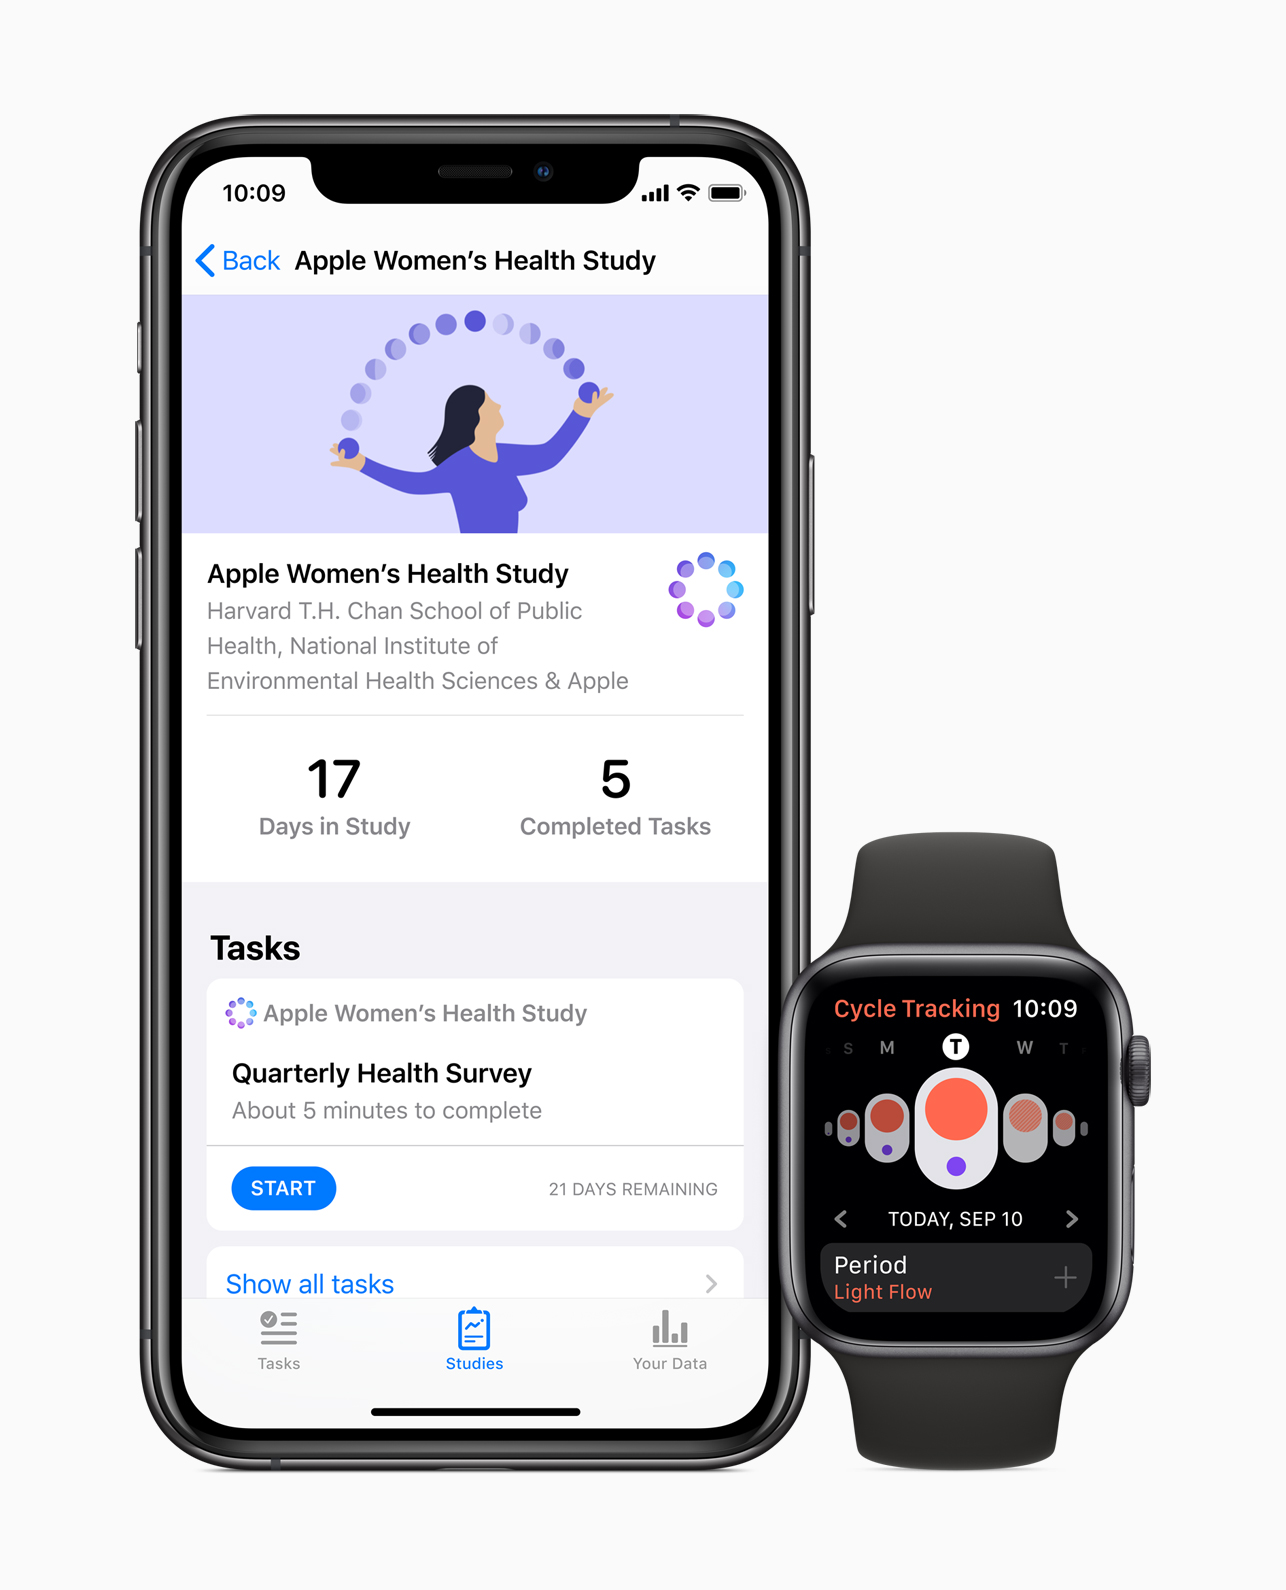 Apple Watches and iPhones want to track your period to make reproductive health better for all